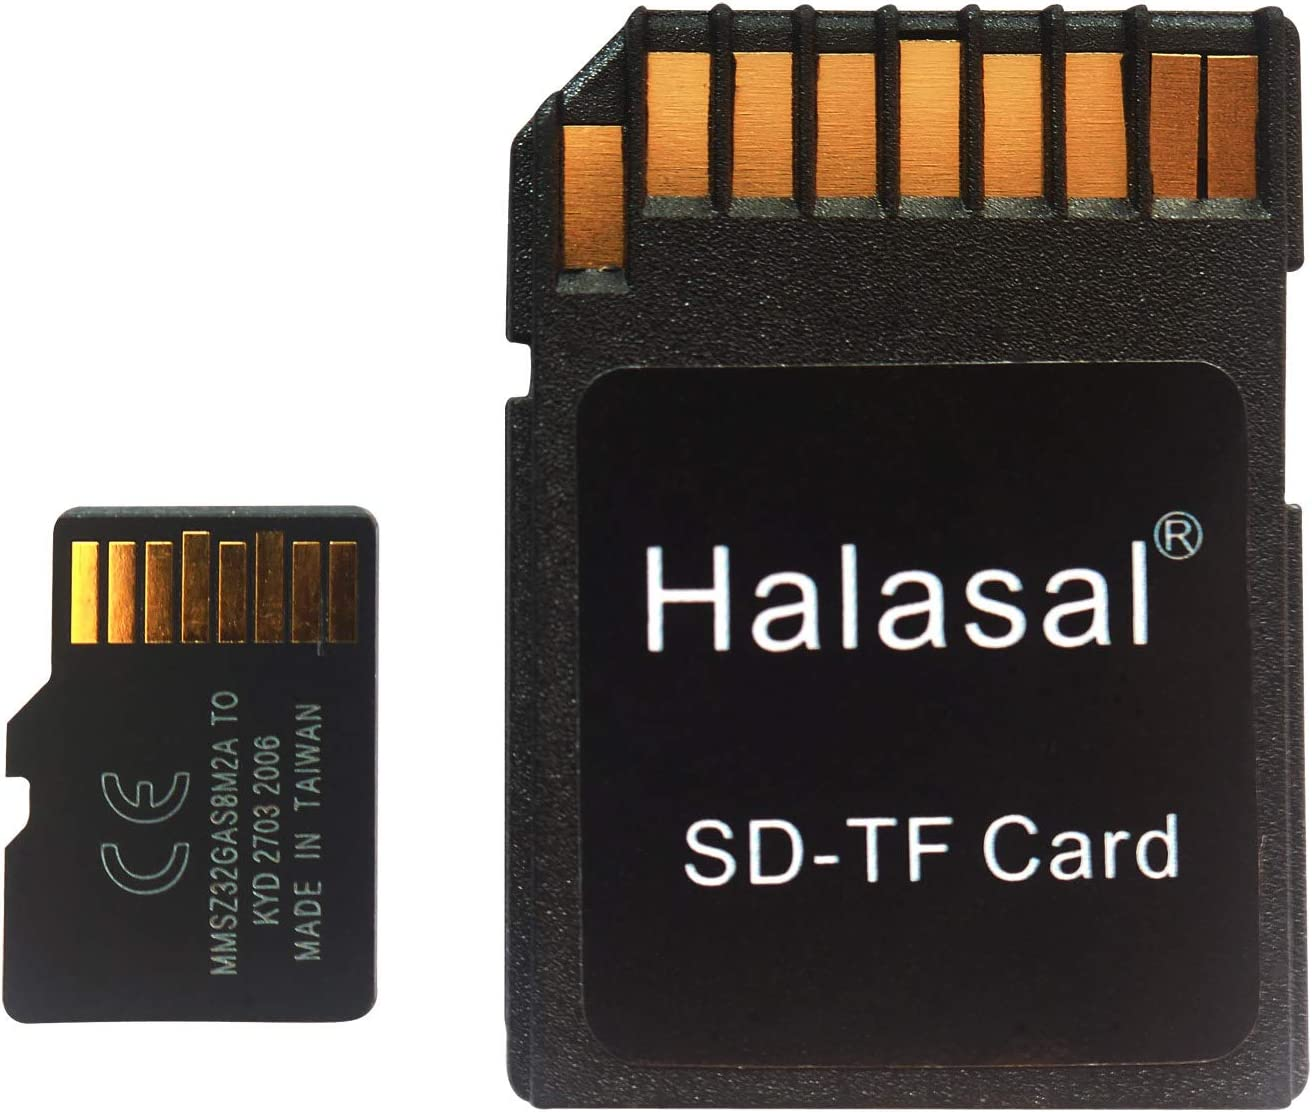 Halasal 128GB U1/U3/Class10/C10 TF Card SD Card Micro SD TF Card SDXC Flash Memory Card with Adapter for Smartphone/Bluetooth Speaker/PC/Camera/VR (128GB, 1Pack with Adapter)